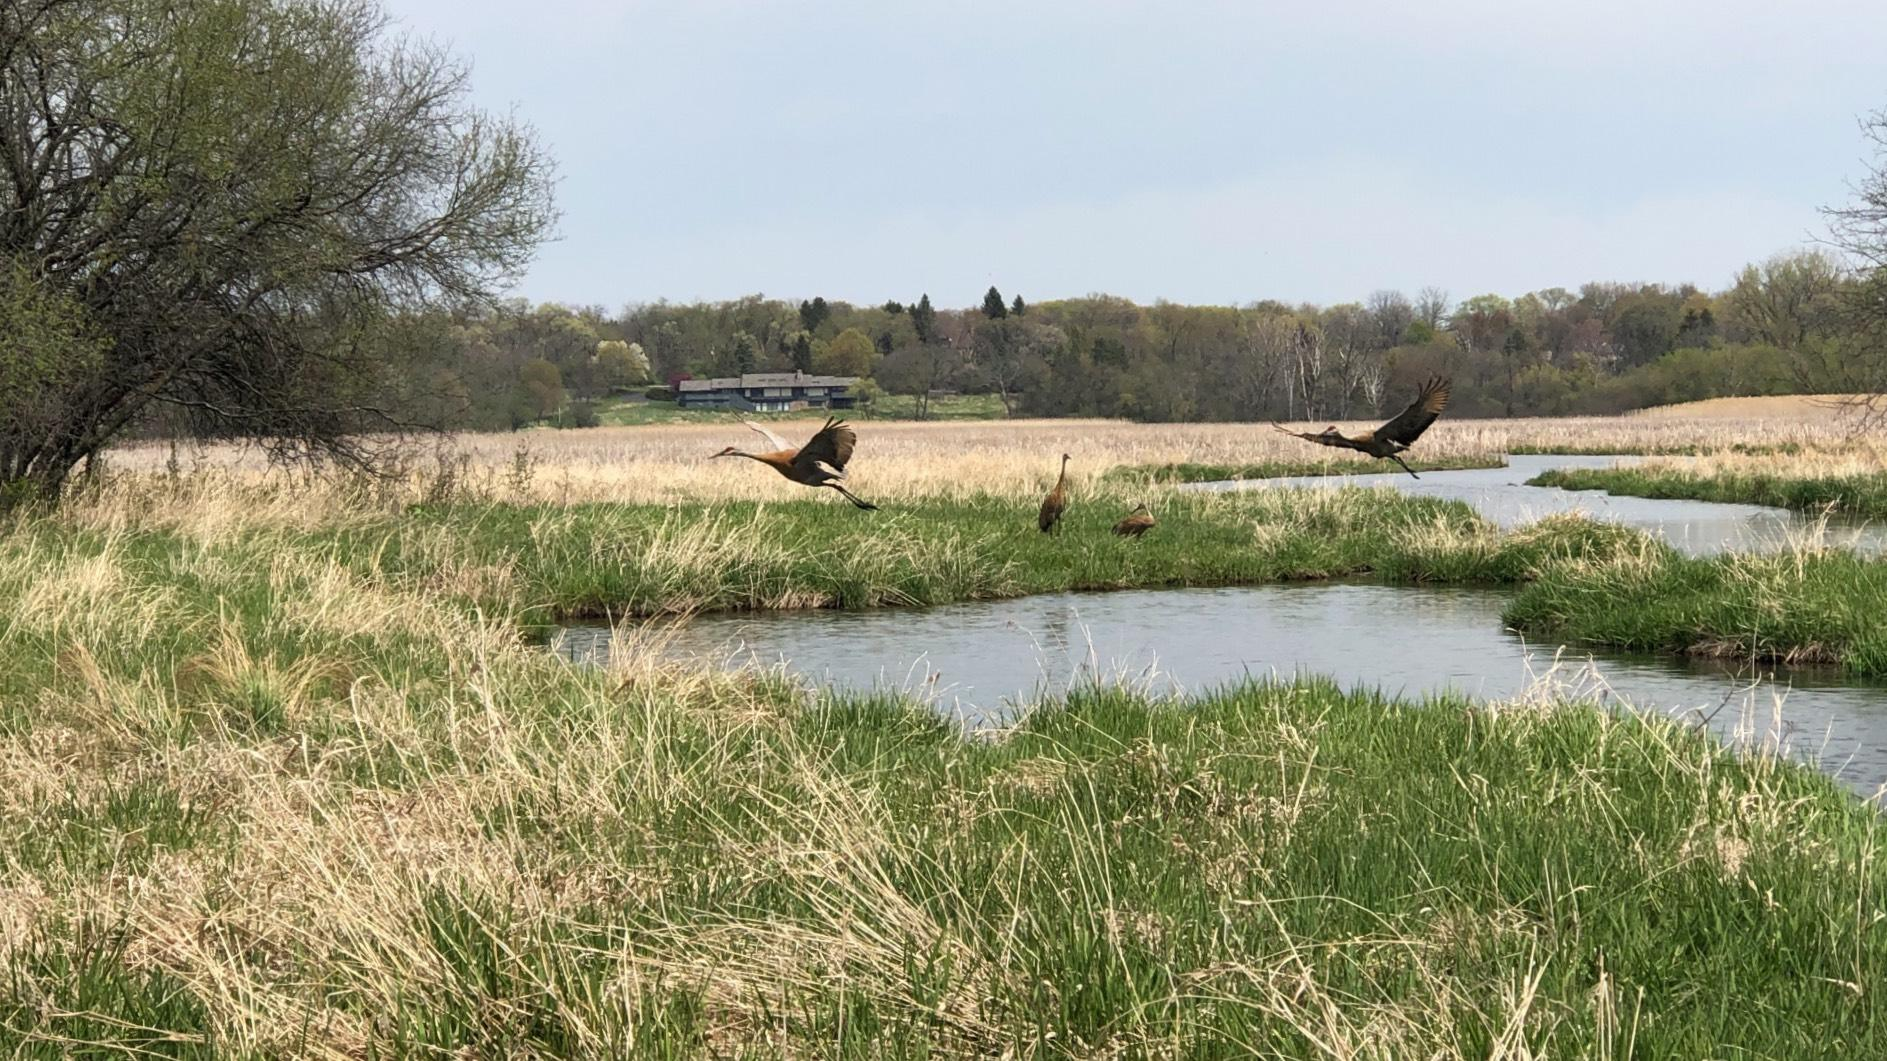 Sandhill cranes fly in the Spring Lake Nature Reserve. (Patty Wetli / WTTW News)